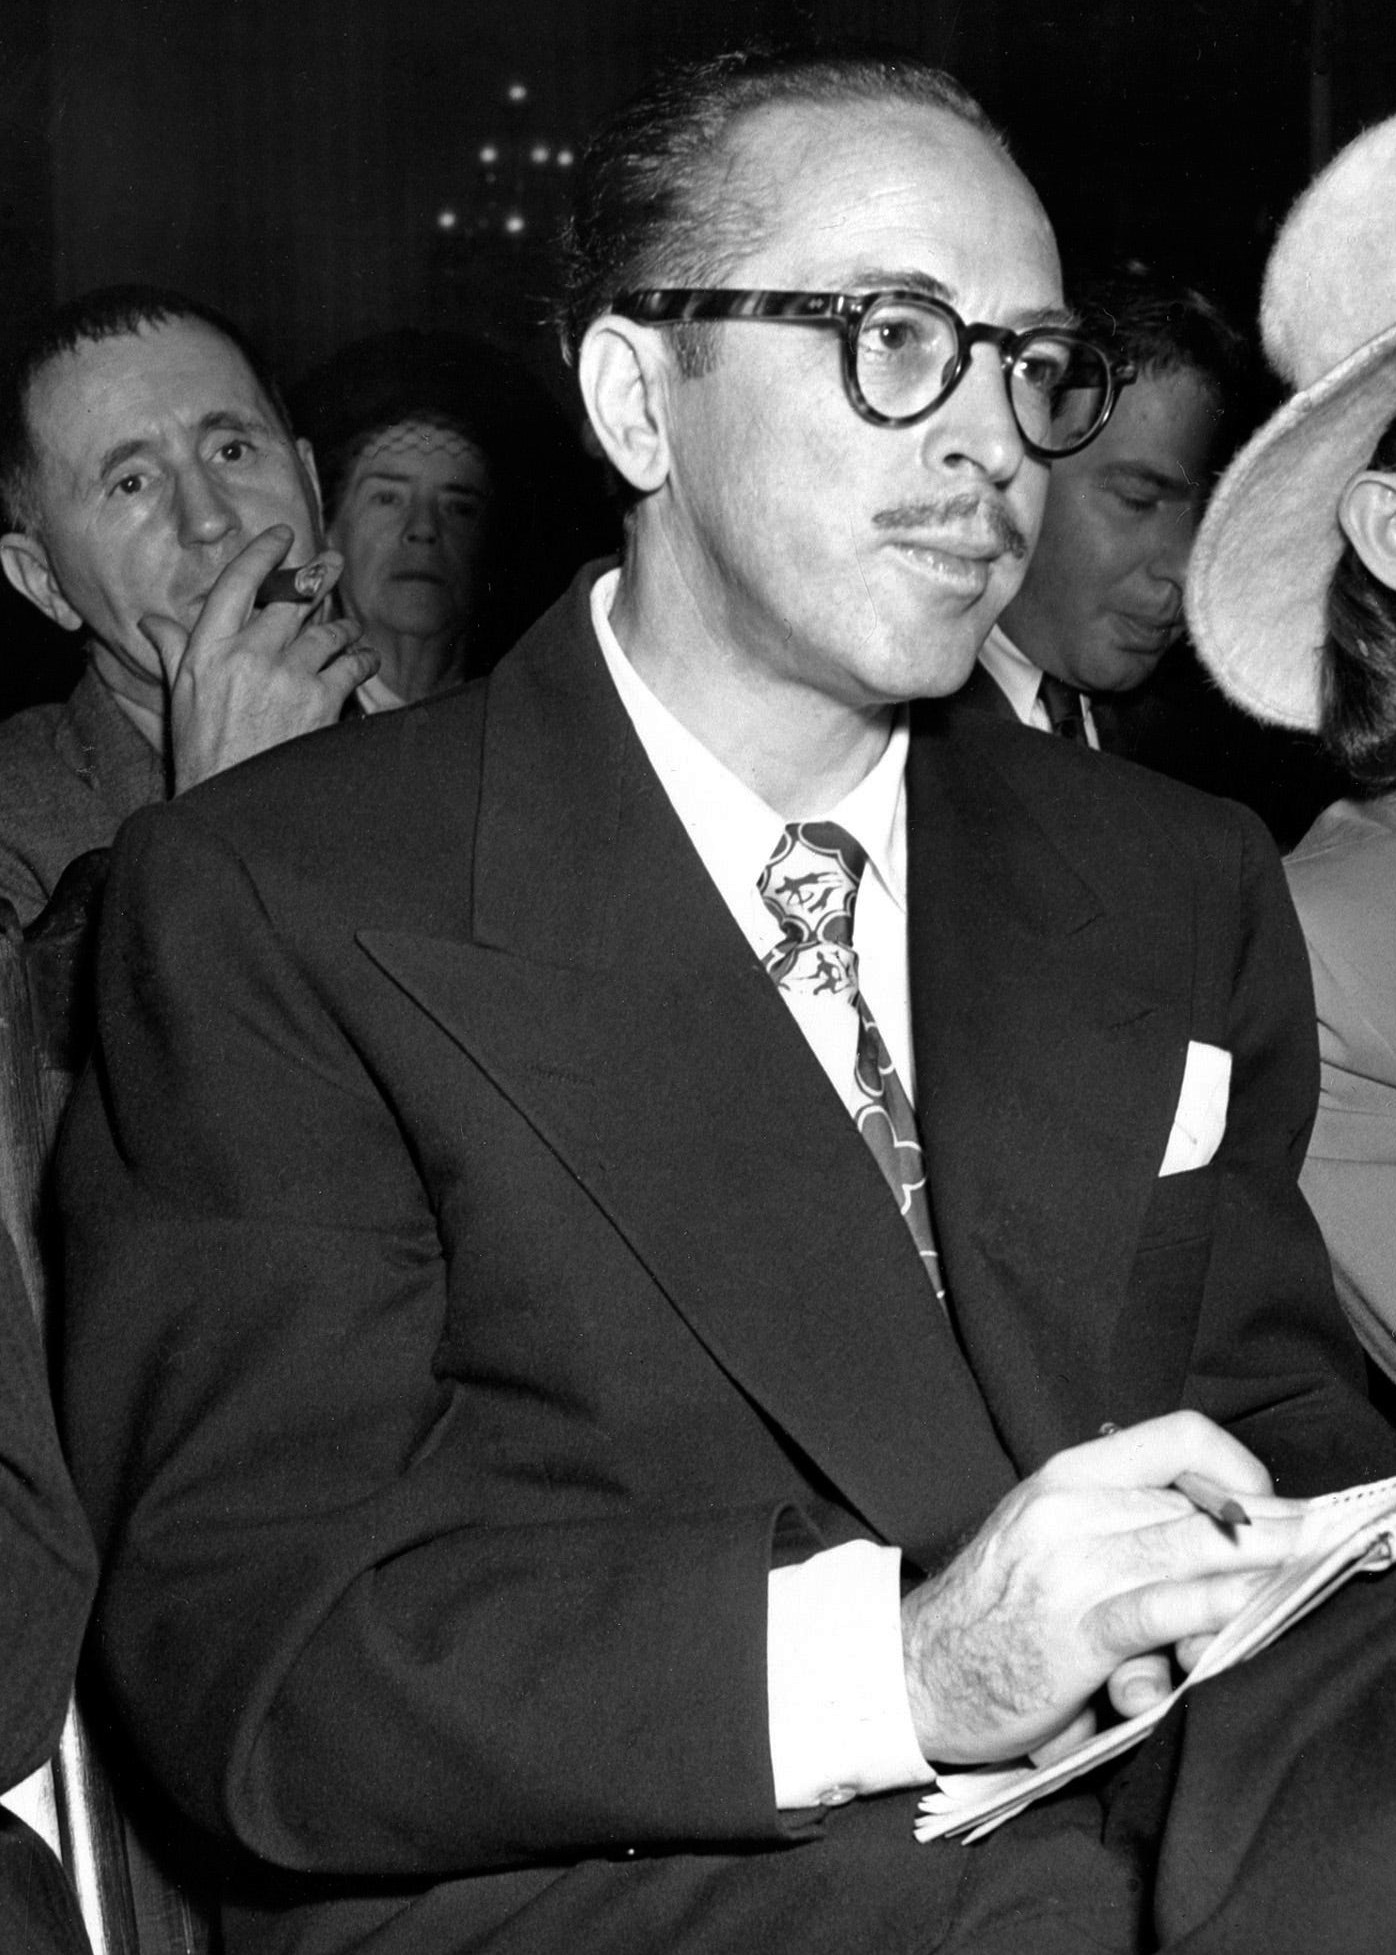 Trumbo at the [[House Un-American Activities Committee]] hearings in 1947